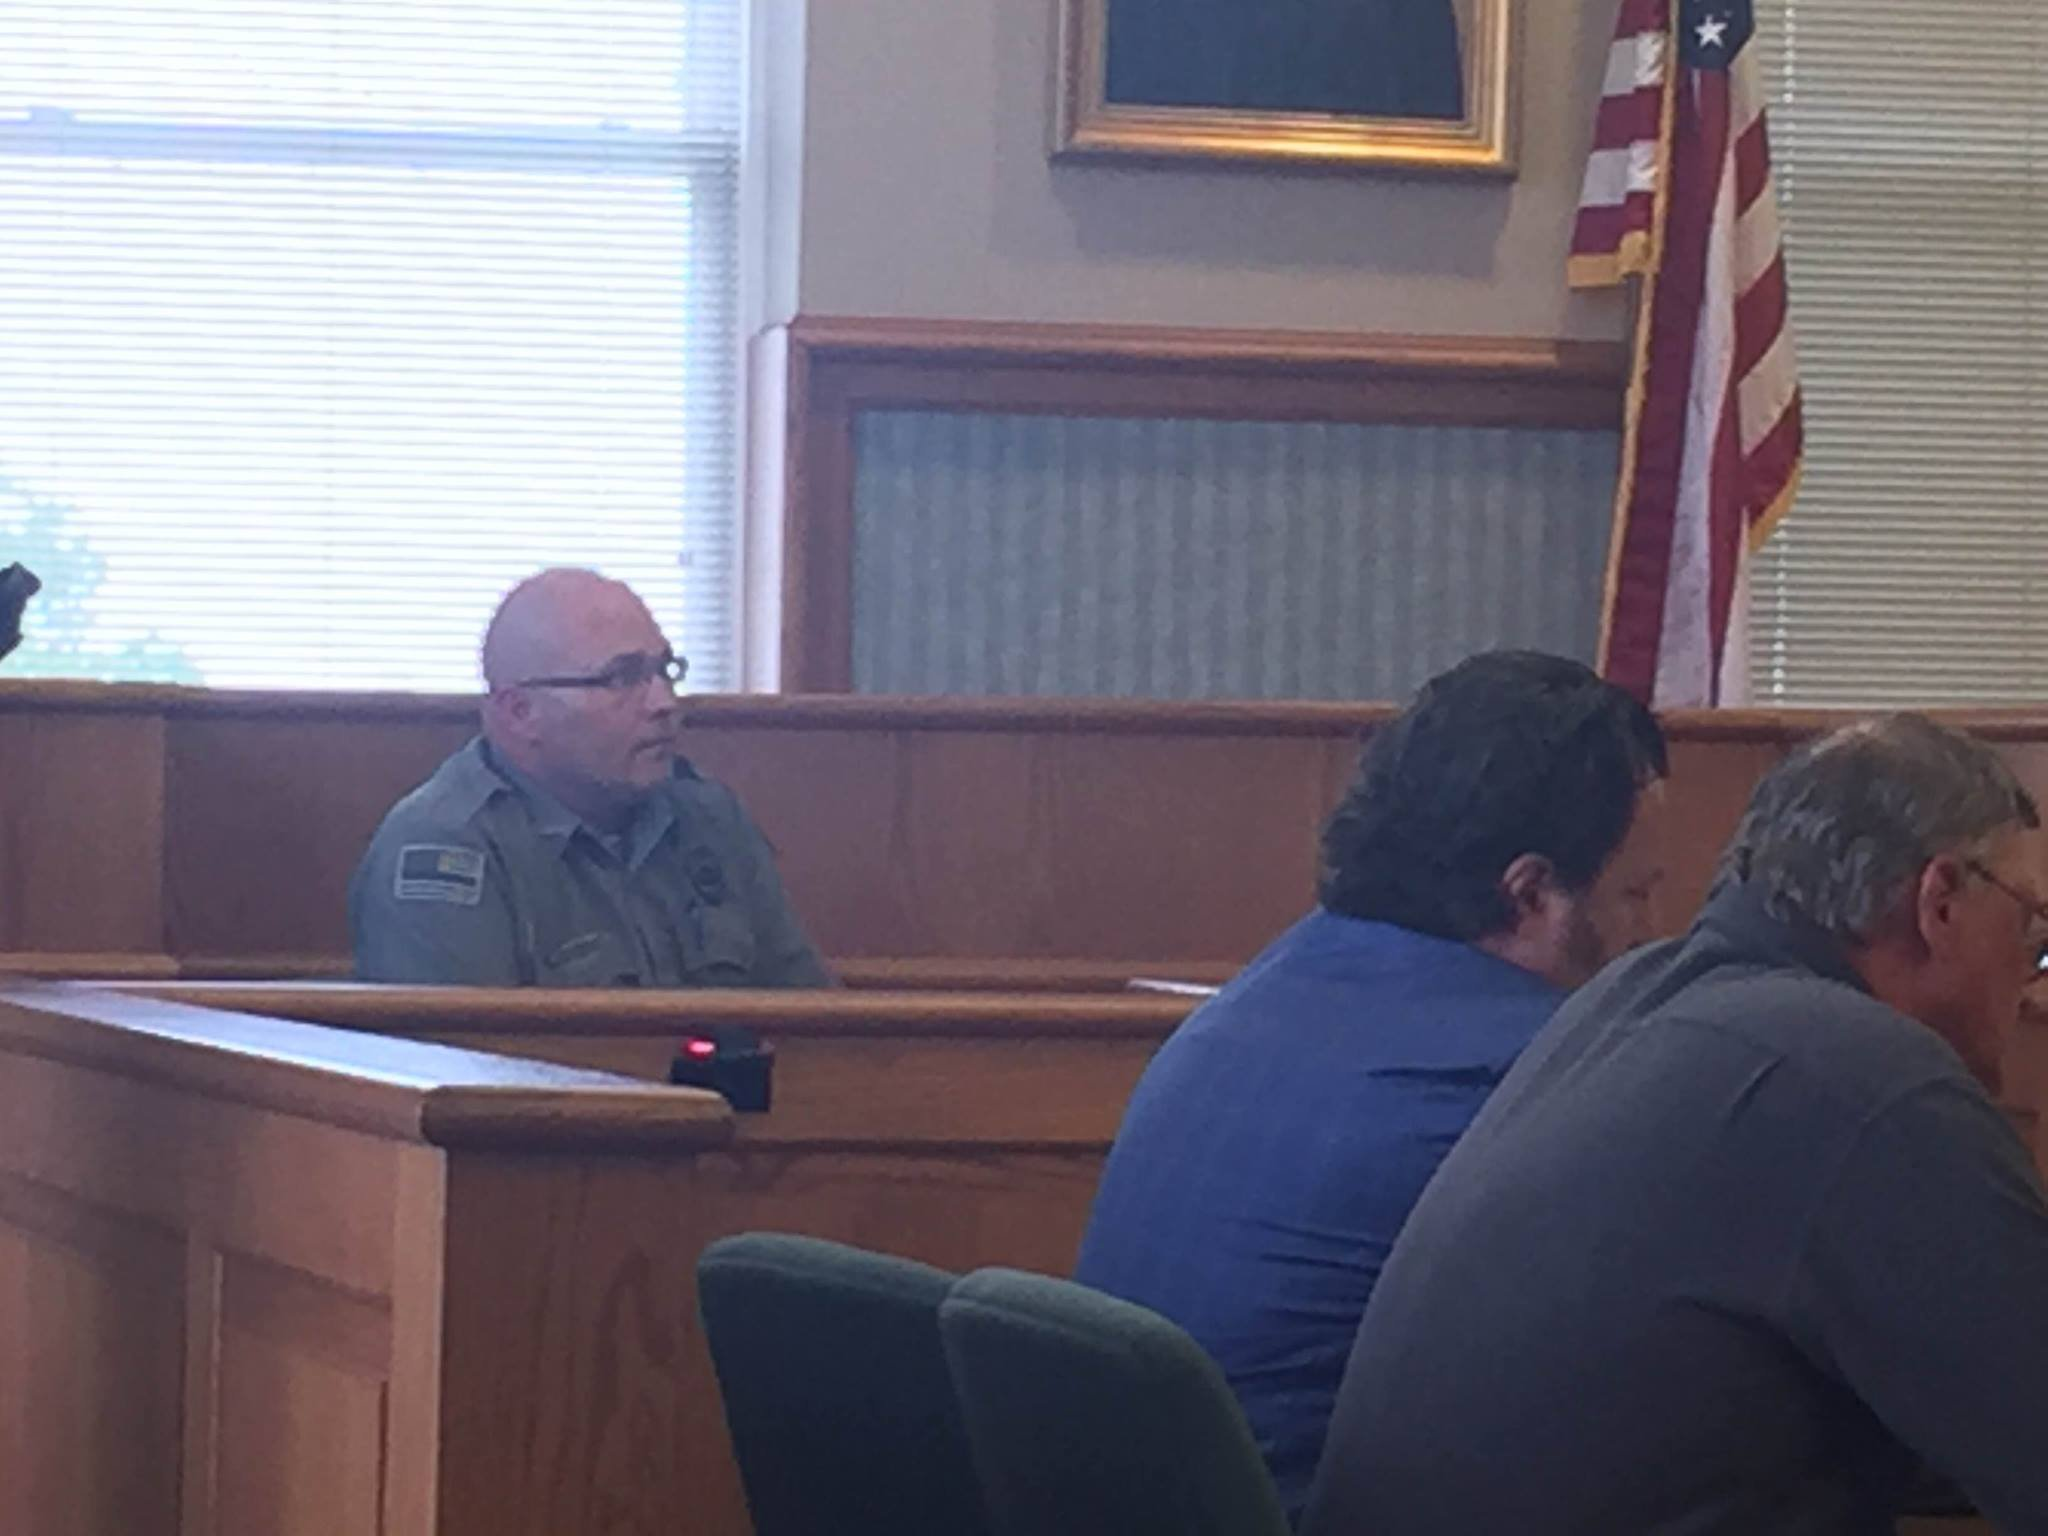 James Campbell with Ballard County Animal Control takes the stand in the Edward Ream trial May 17, 2016.